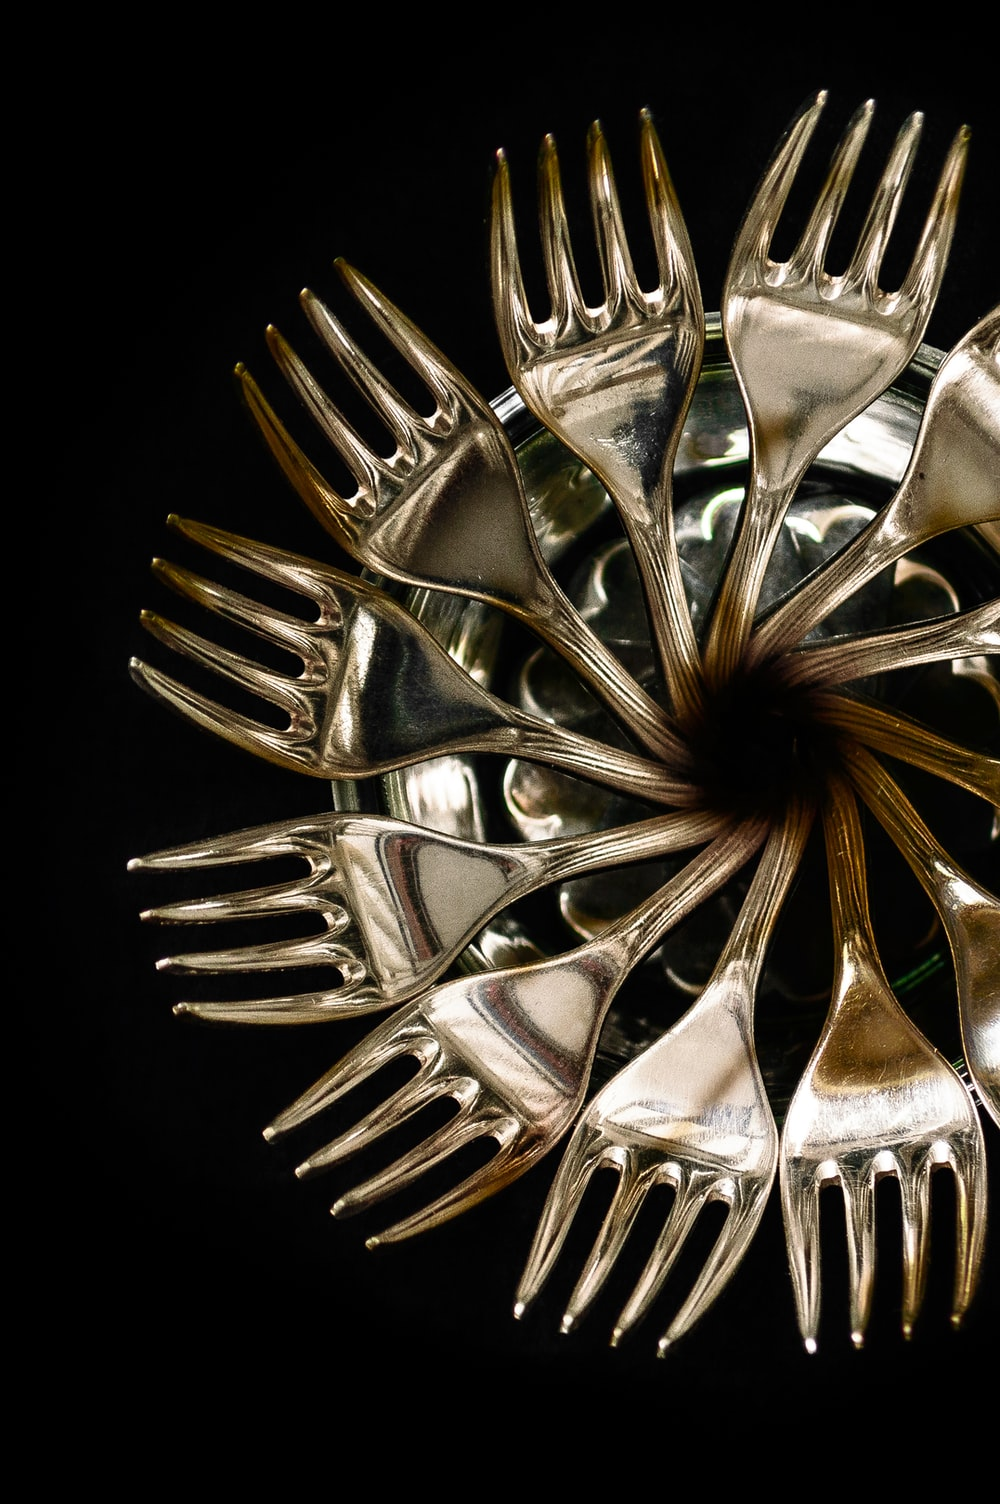 stainless steel fork lot in black background